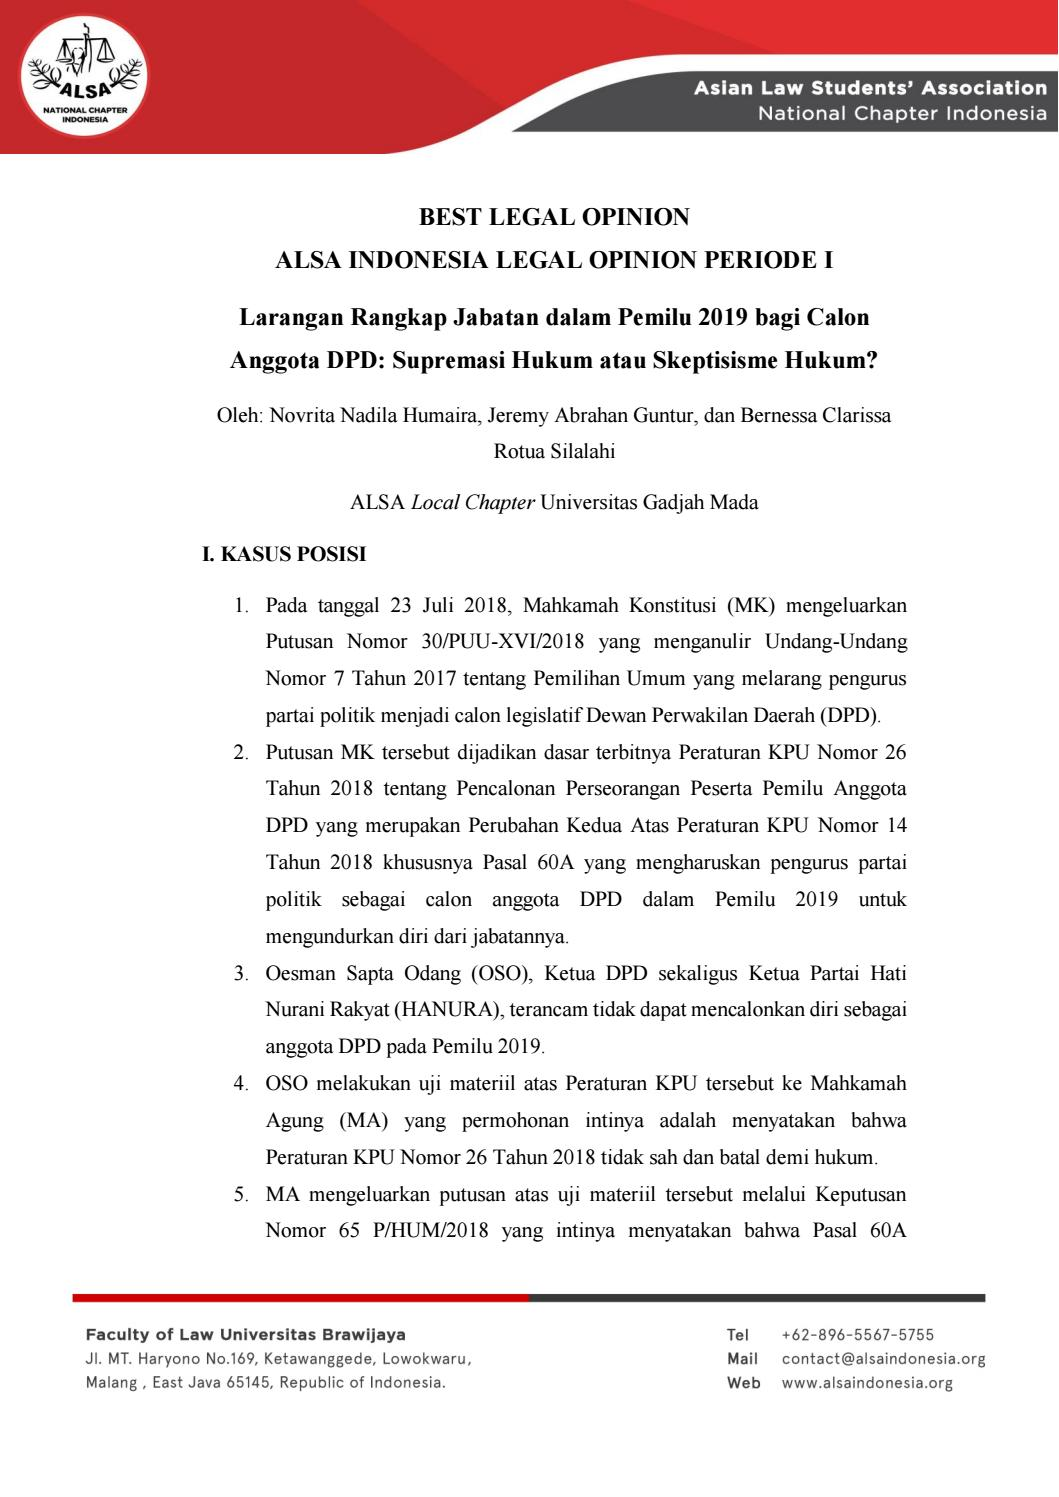 Best Legal Opinion Alsa Indonesia Legal Opinion 1 By Alsa Indonesia Issuu